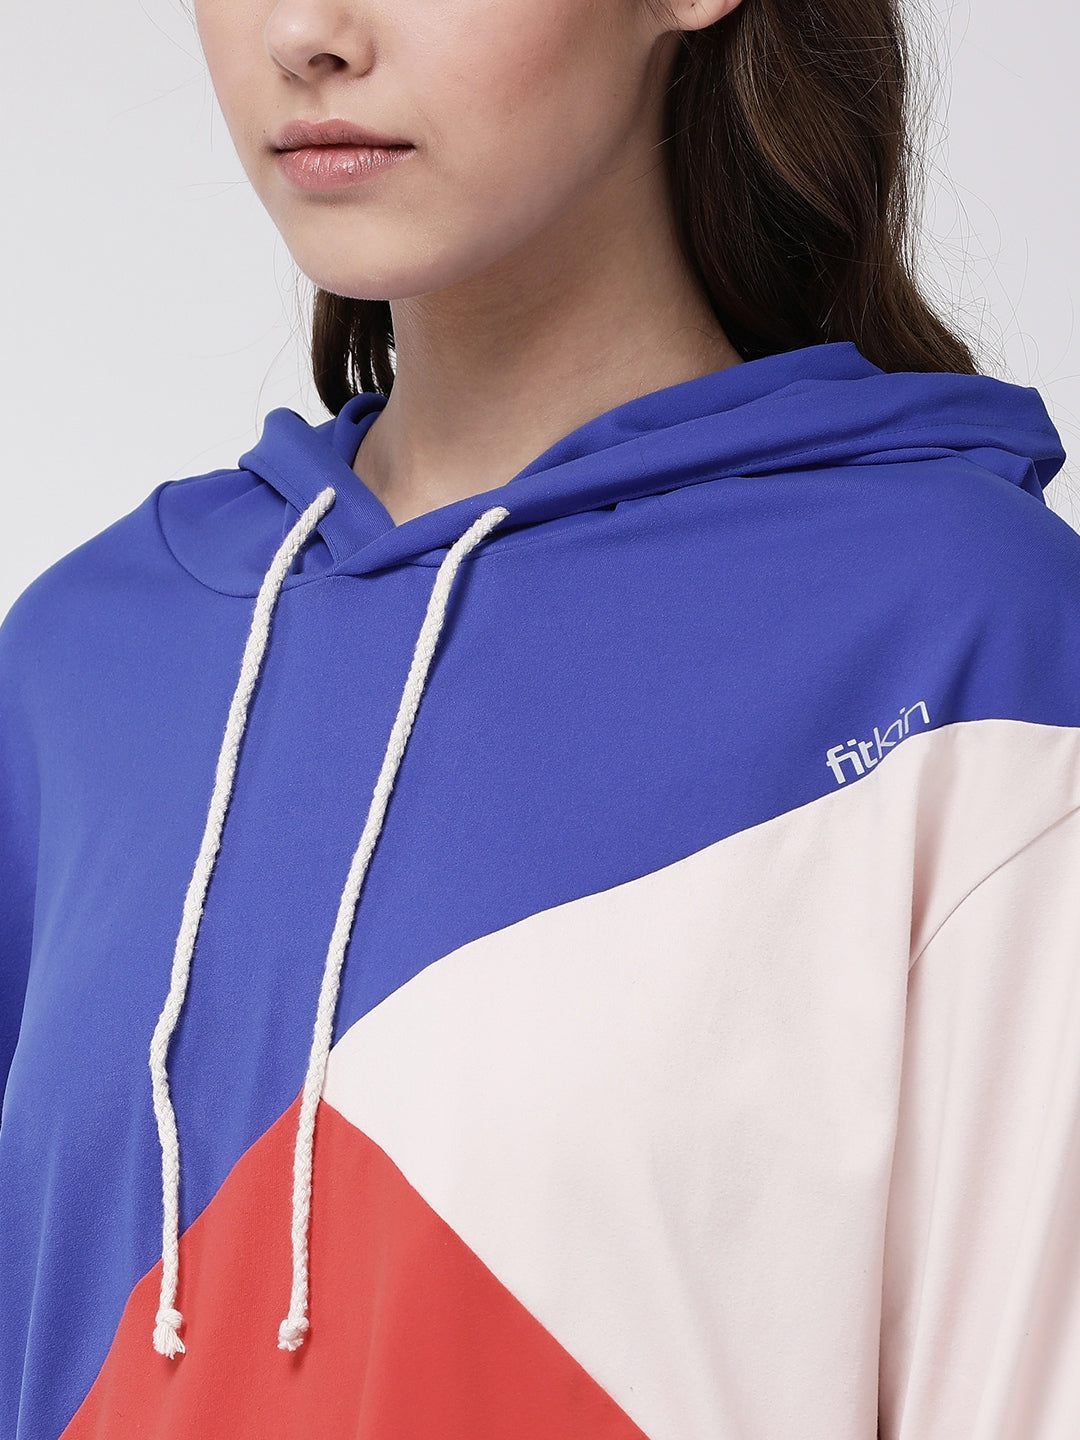 Fitkin Women tri color casual hoodie